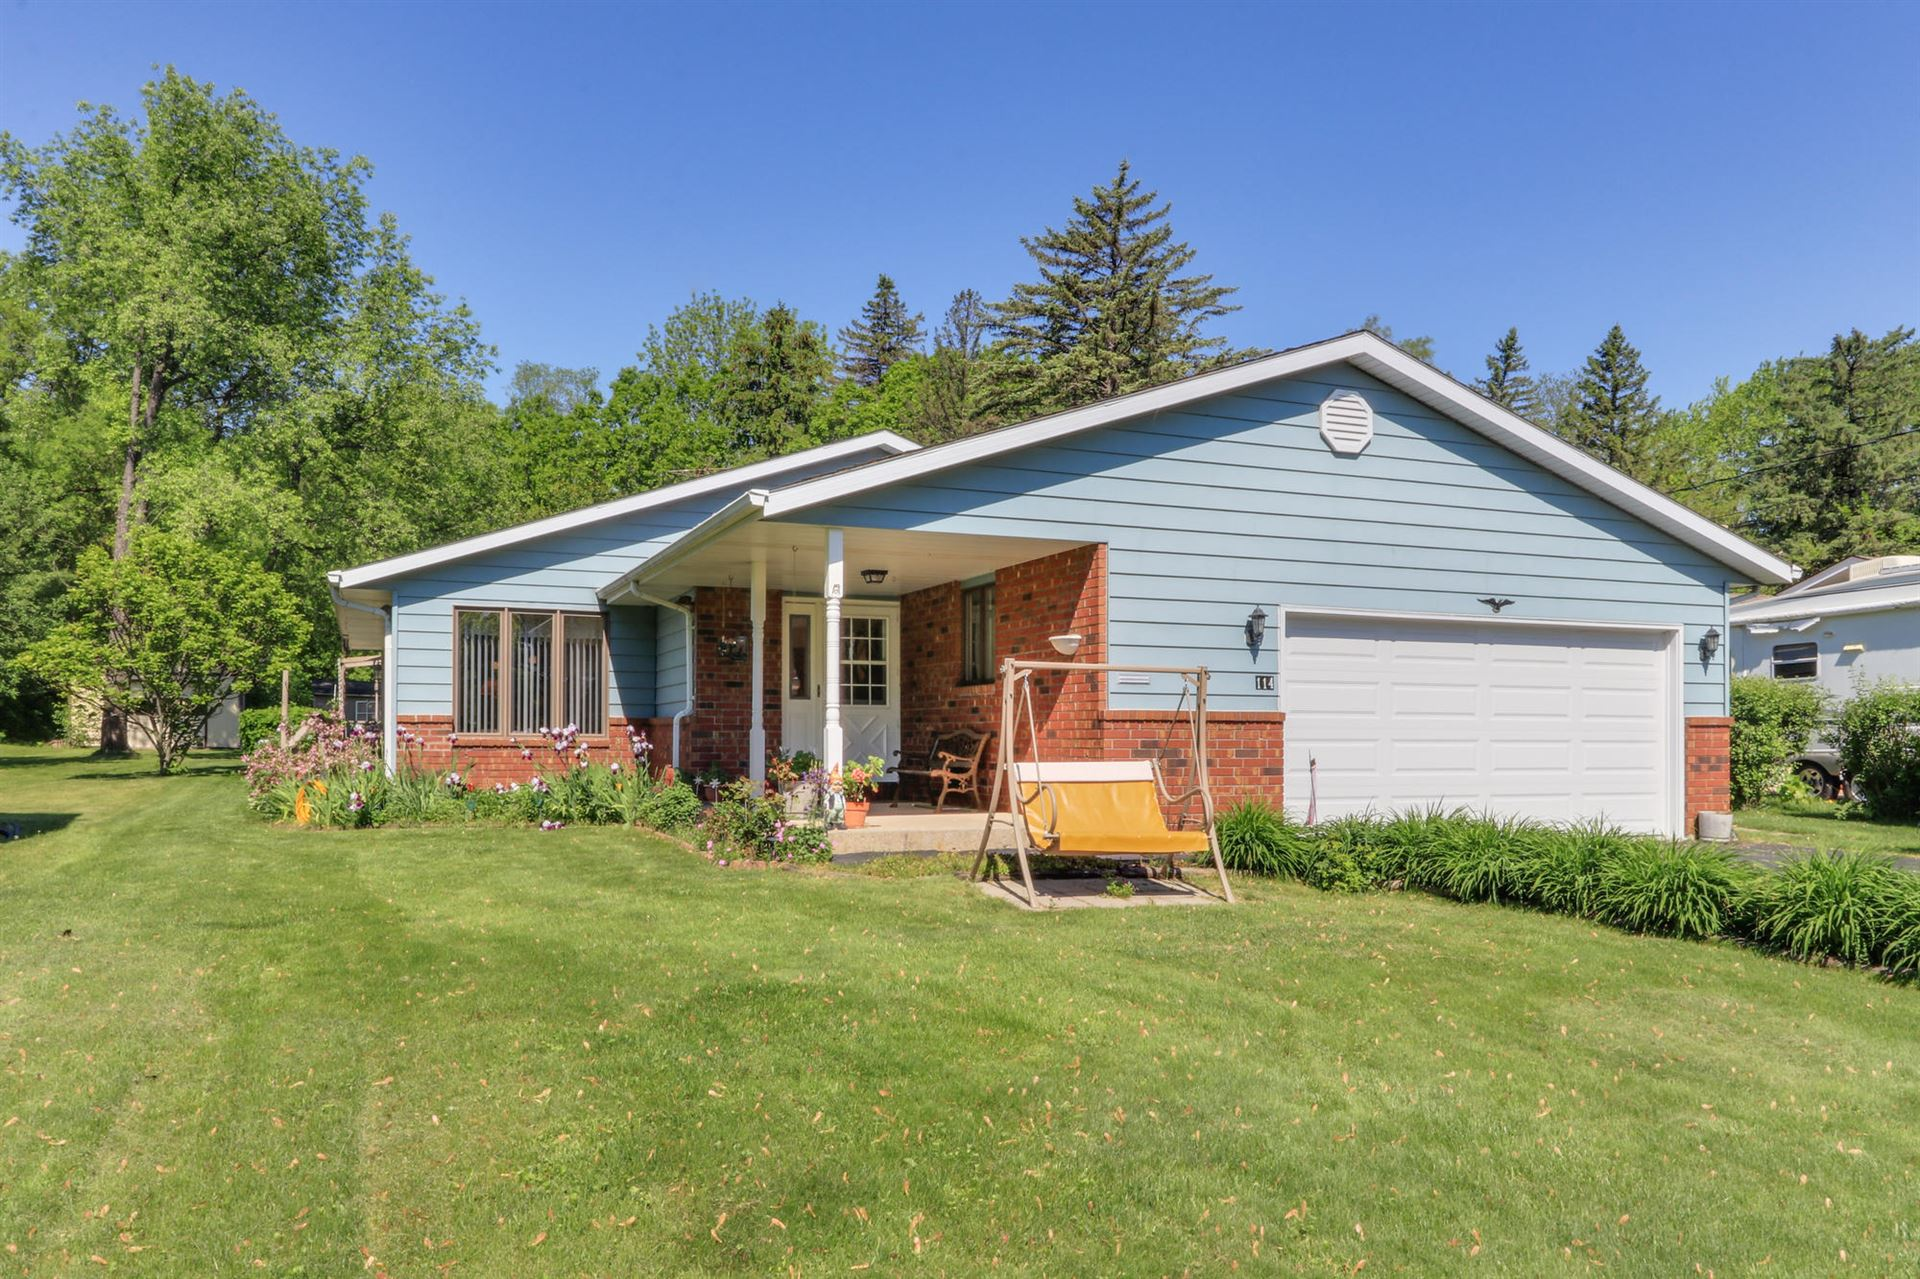 114 Riverview Dr, Waterford, WI 53185 - #: 1691975